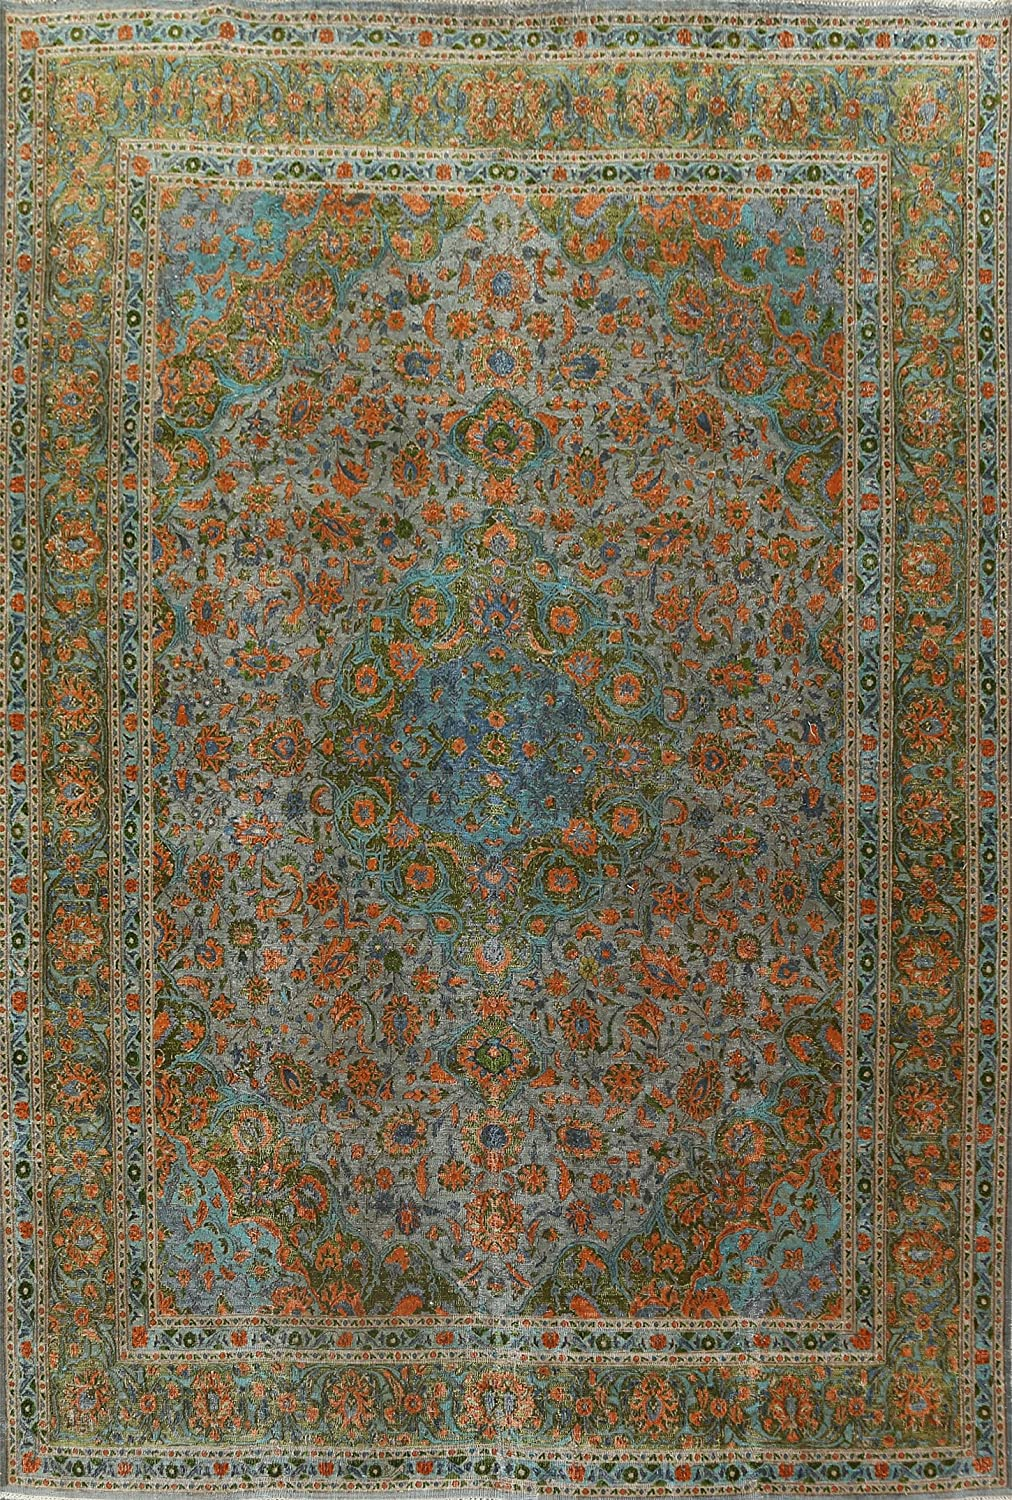 Antique Grey Floral Distressed Over-Dye Kashaan Area Ru Oriental Our shop OFFers the best Challenge the lowest price of Japan ☆ service